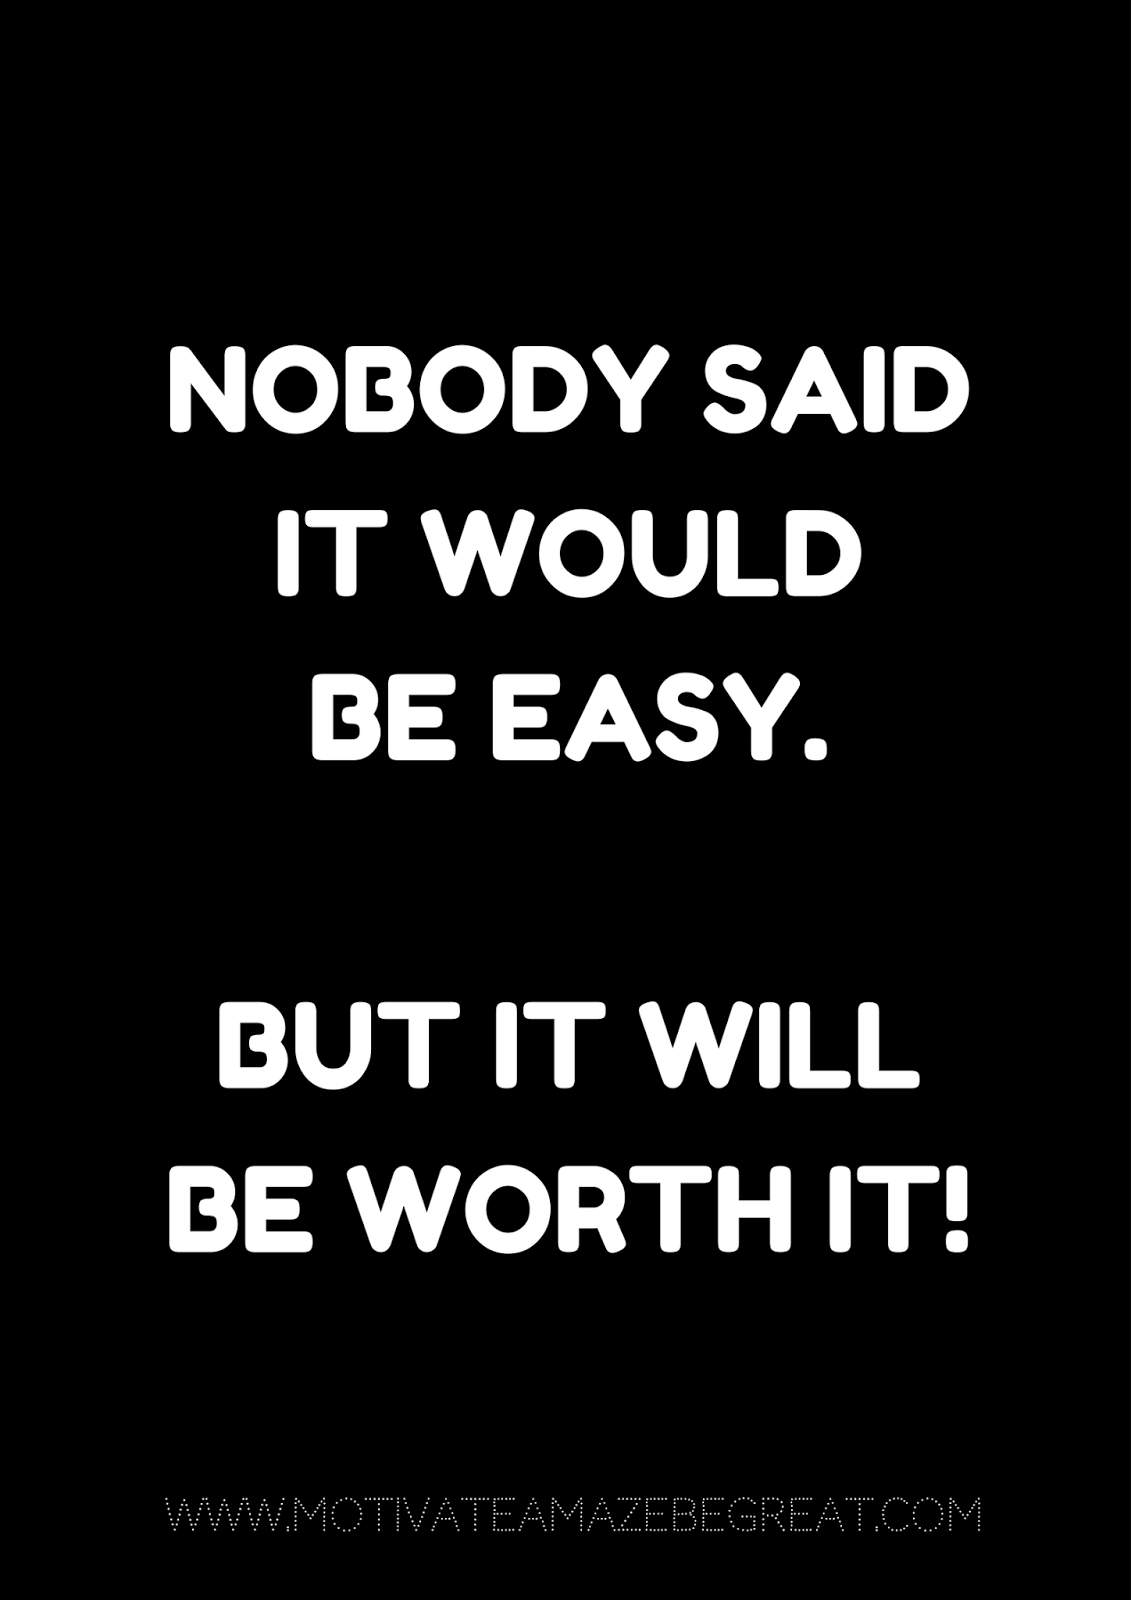 Motivational Quotes For Success 27 Self Motivation Quotes And Posters For Success  Motivate Amaze